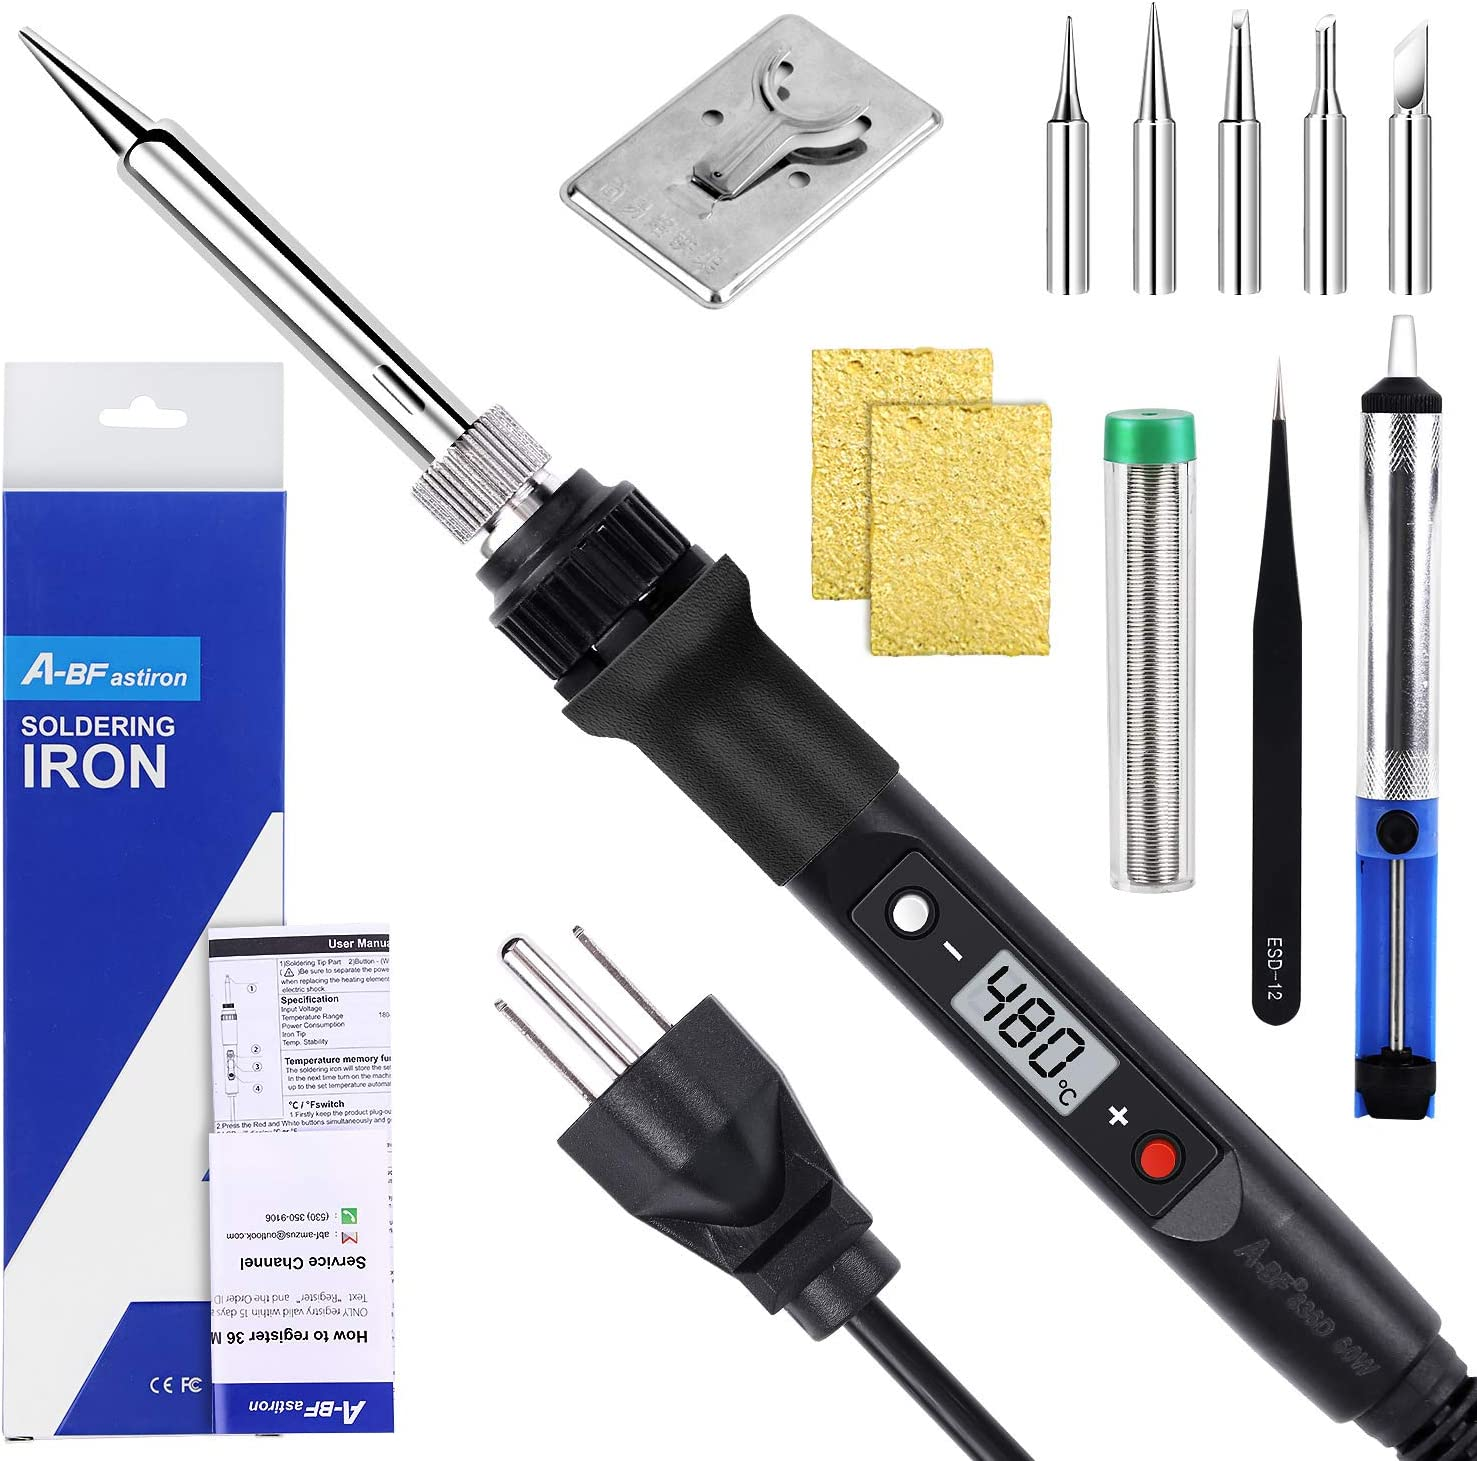 A-BFastiron Electronics Soldering Iron 80W Kit Super popular specialty store Import - 110V